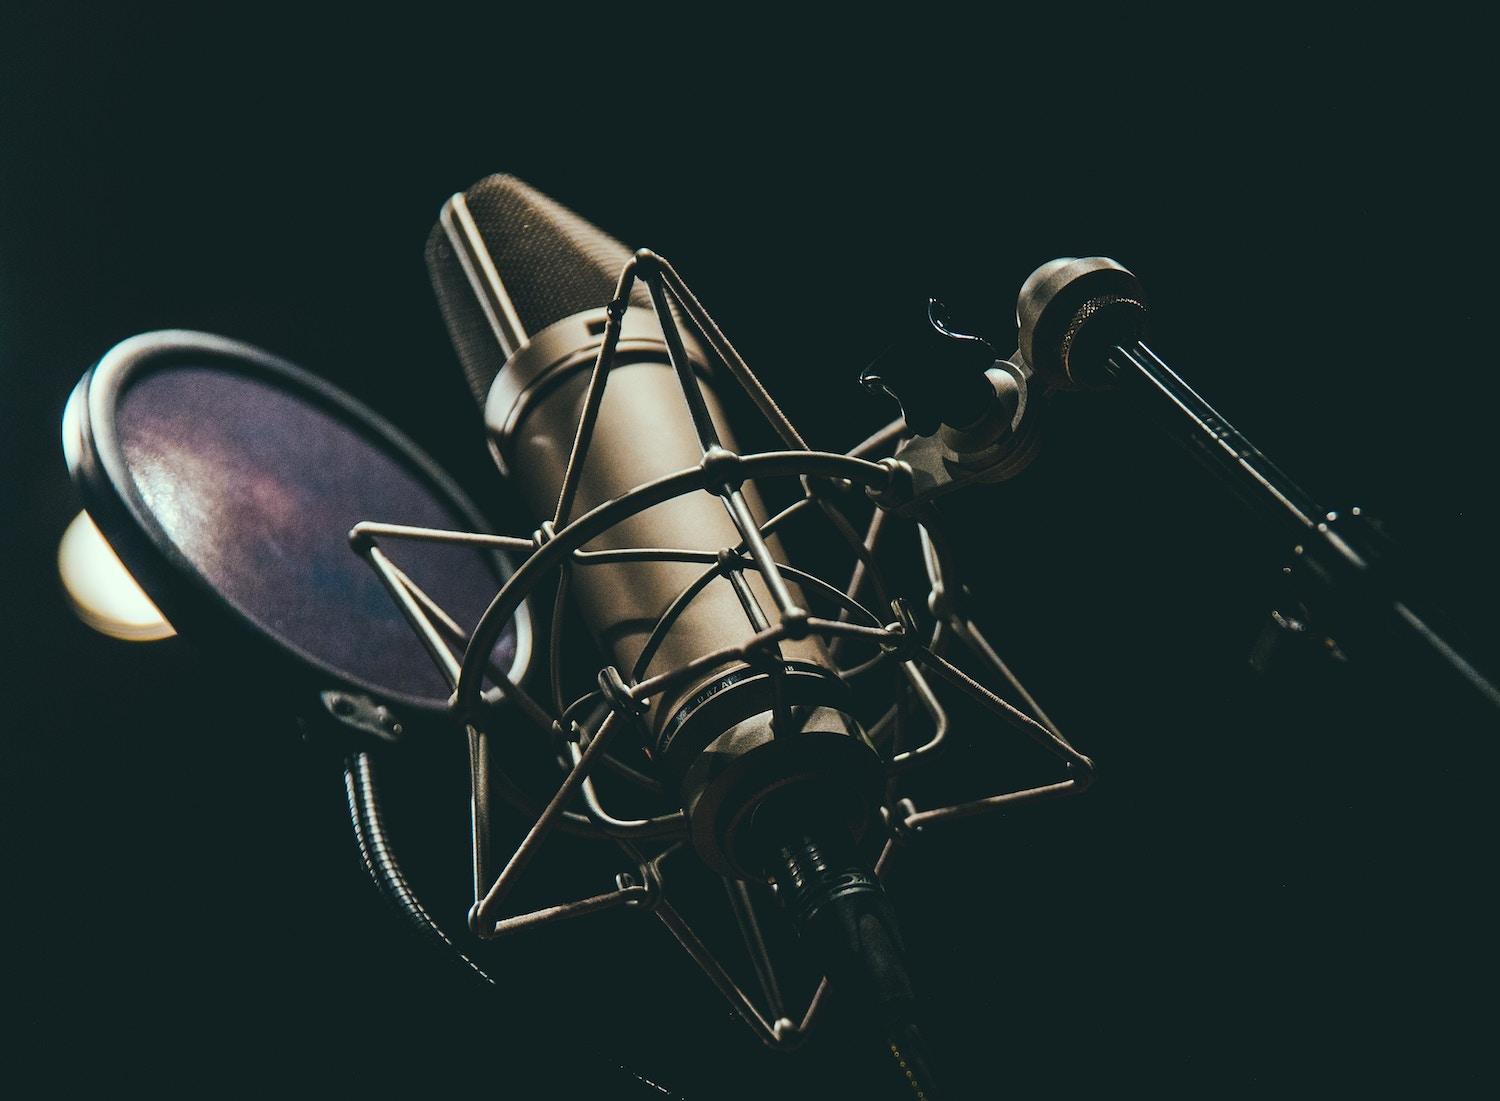 Accents when voice-acting: image of a microphone